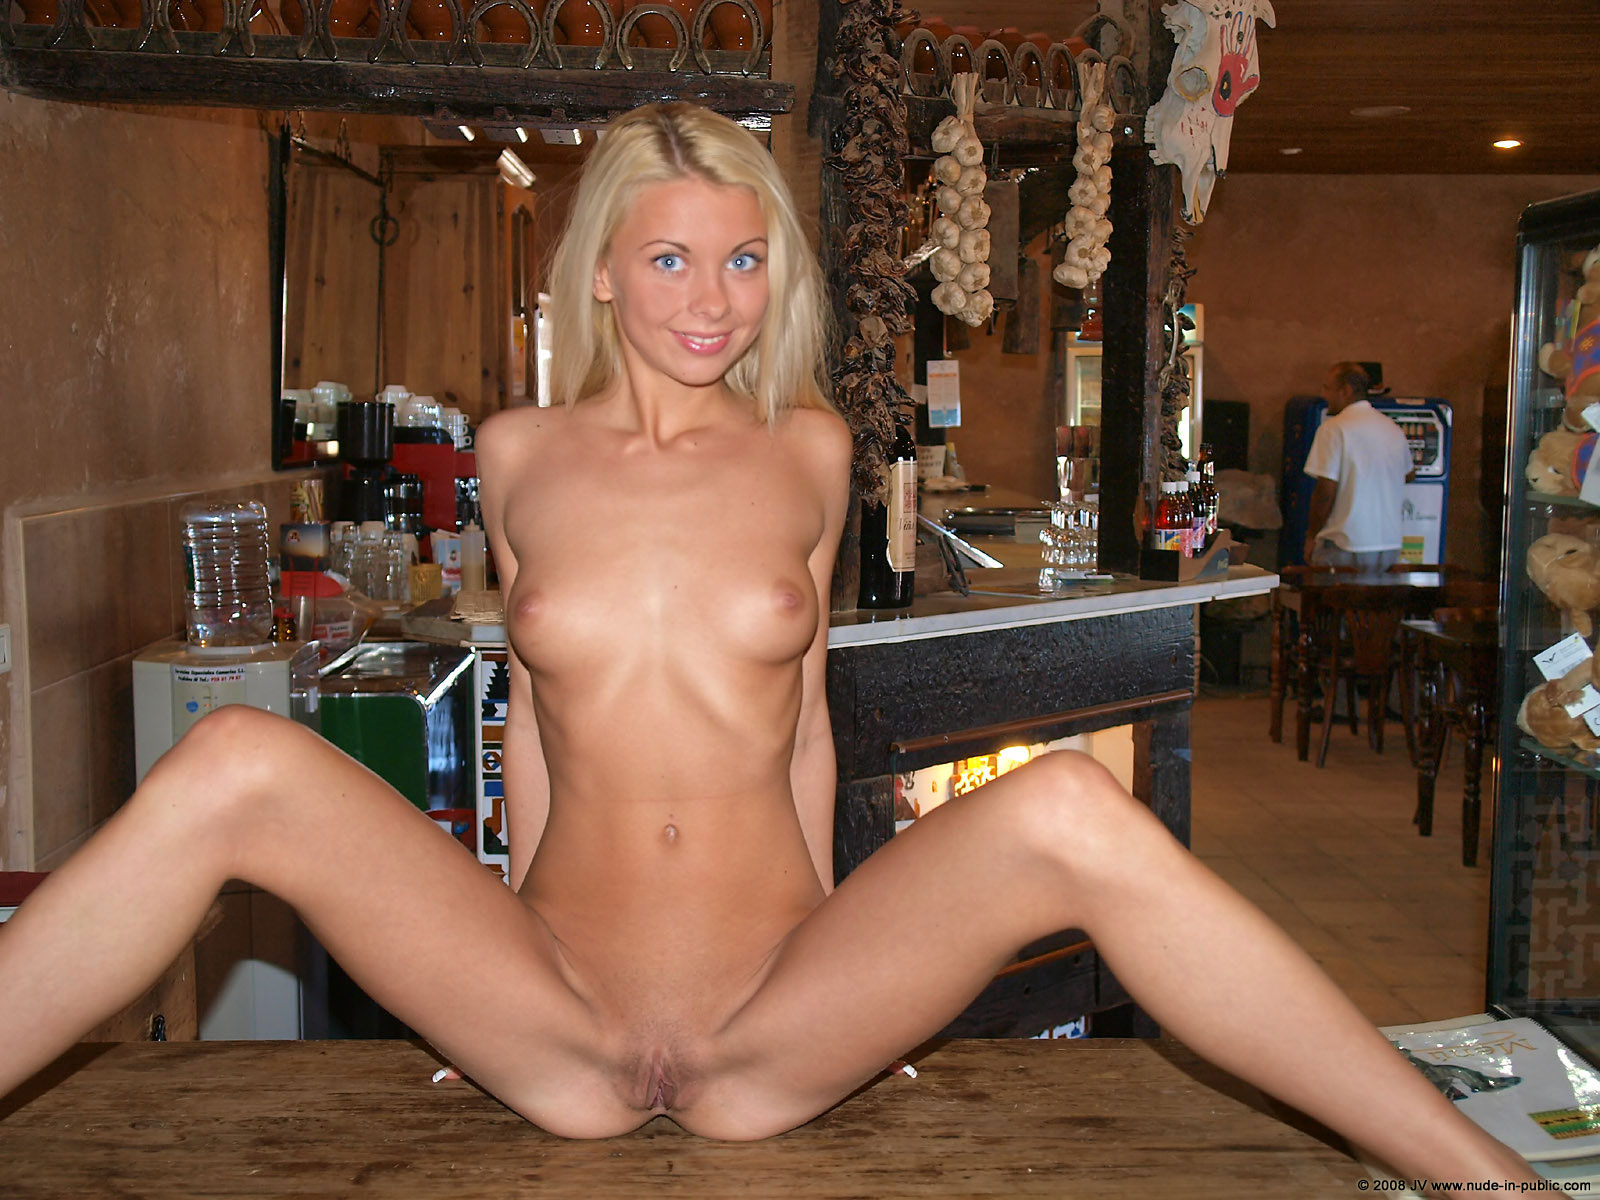 Apologise, but, nude girl bar girl